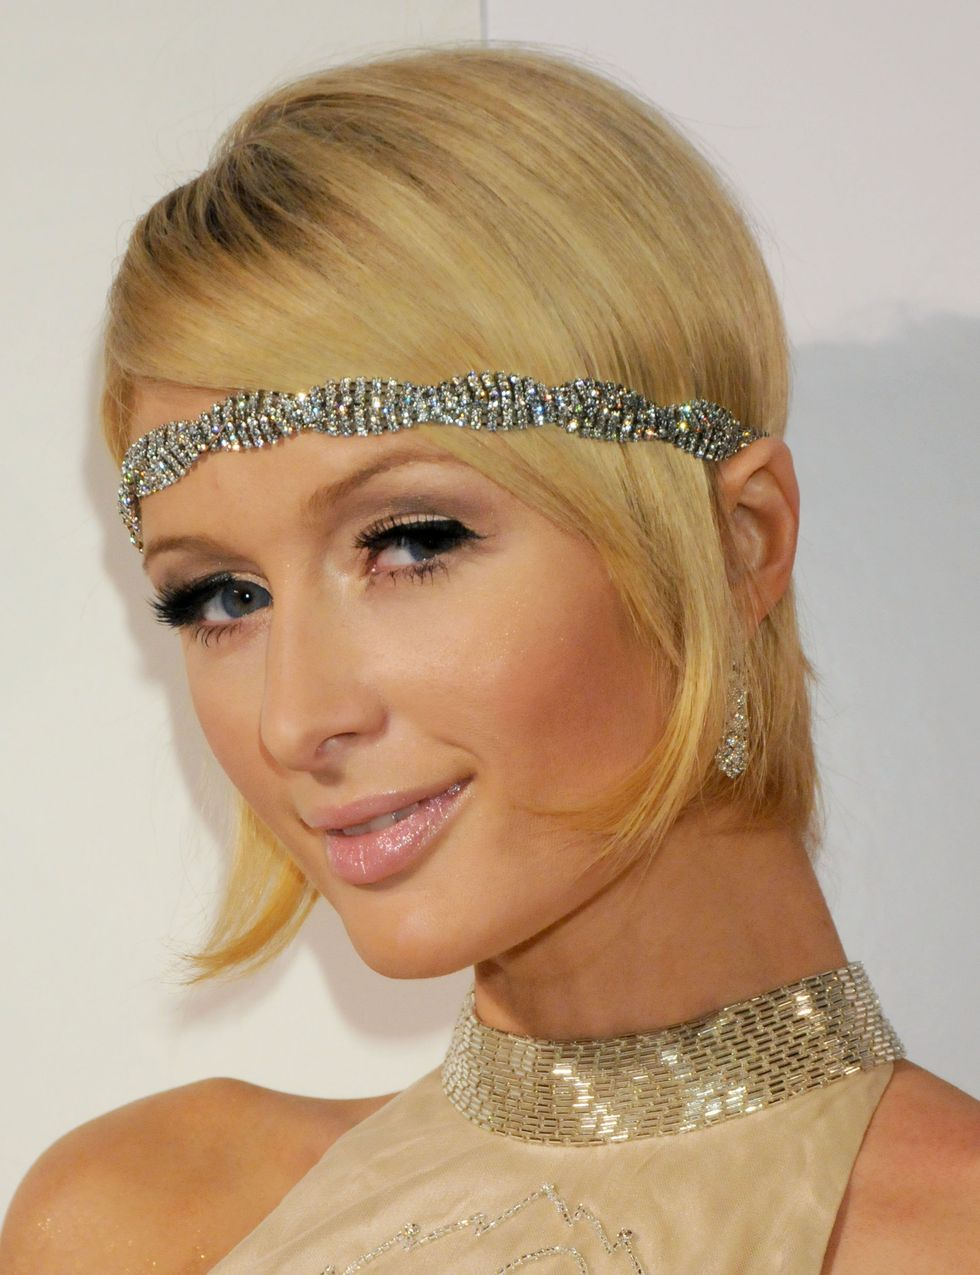 paris-hilton-haven-evening-of-fashion-in-beverly-hills-05